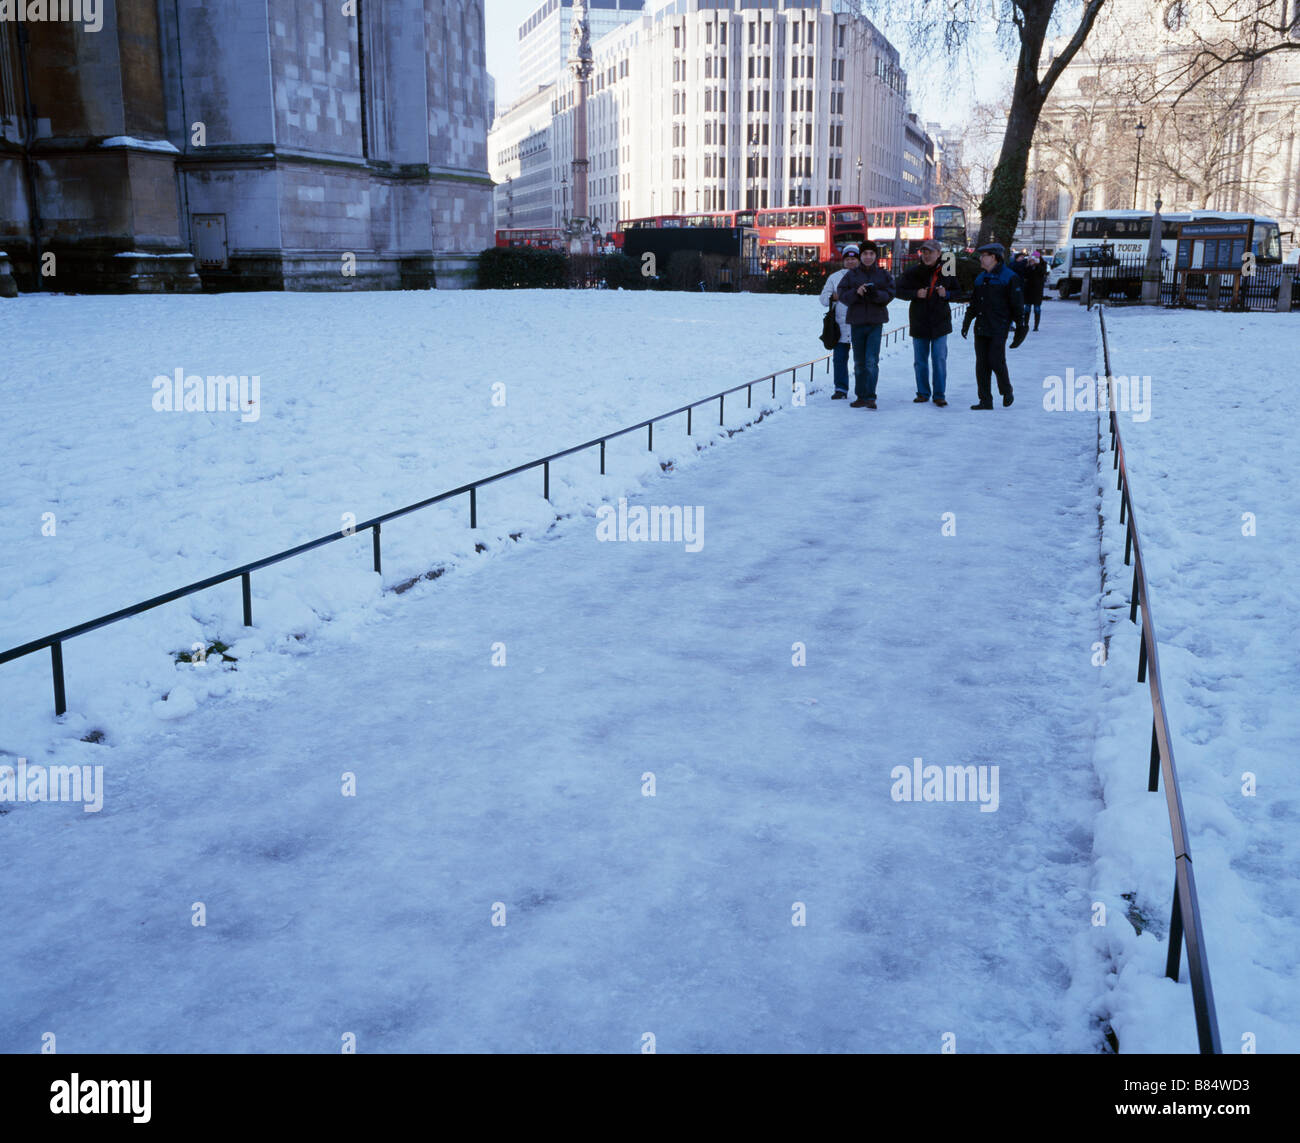 Icy path. Westminster Abbey, London, England, UK. - Stock Image